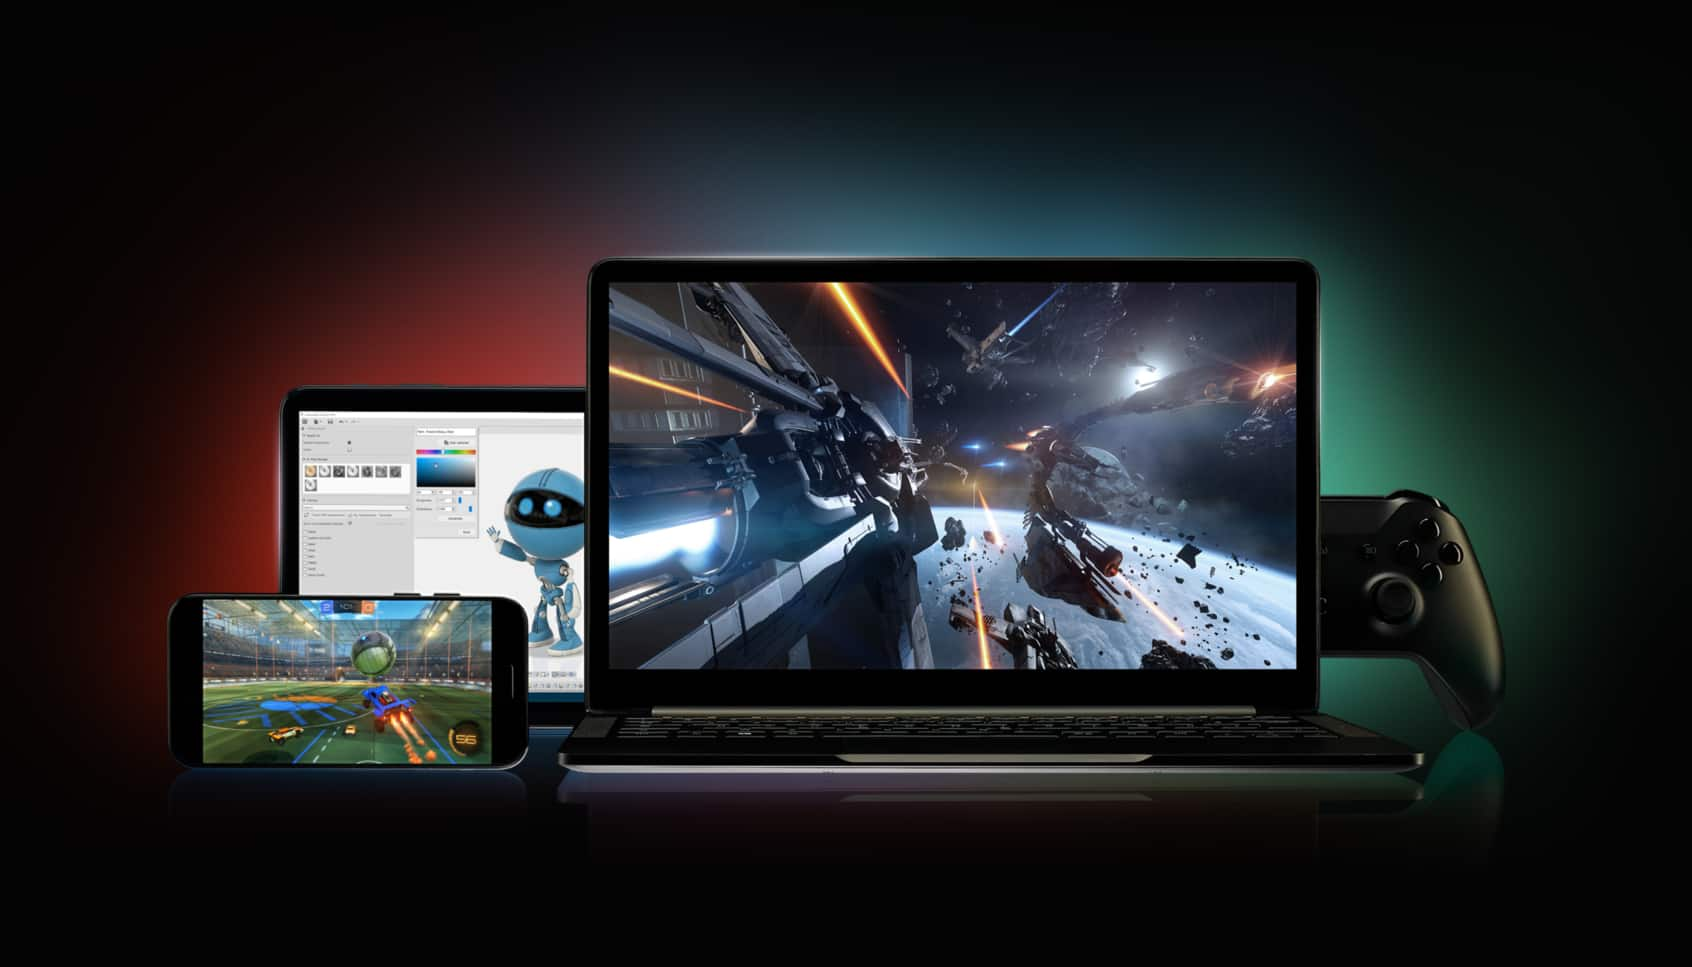 Shadow US: Shadow Cloud Gaming PC Annual Subscription $12.99 Per Month for New Users